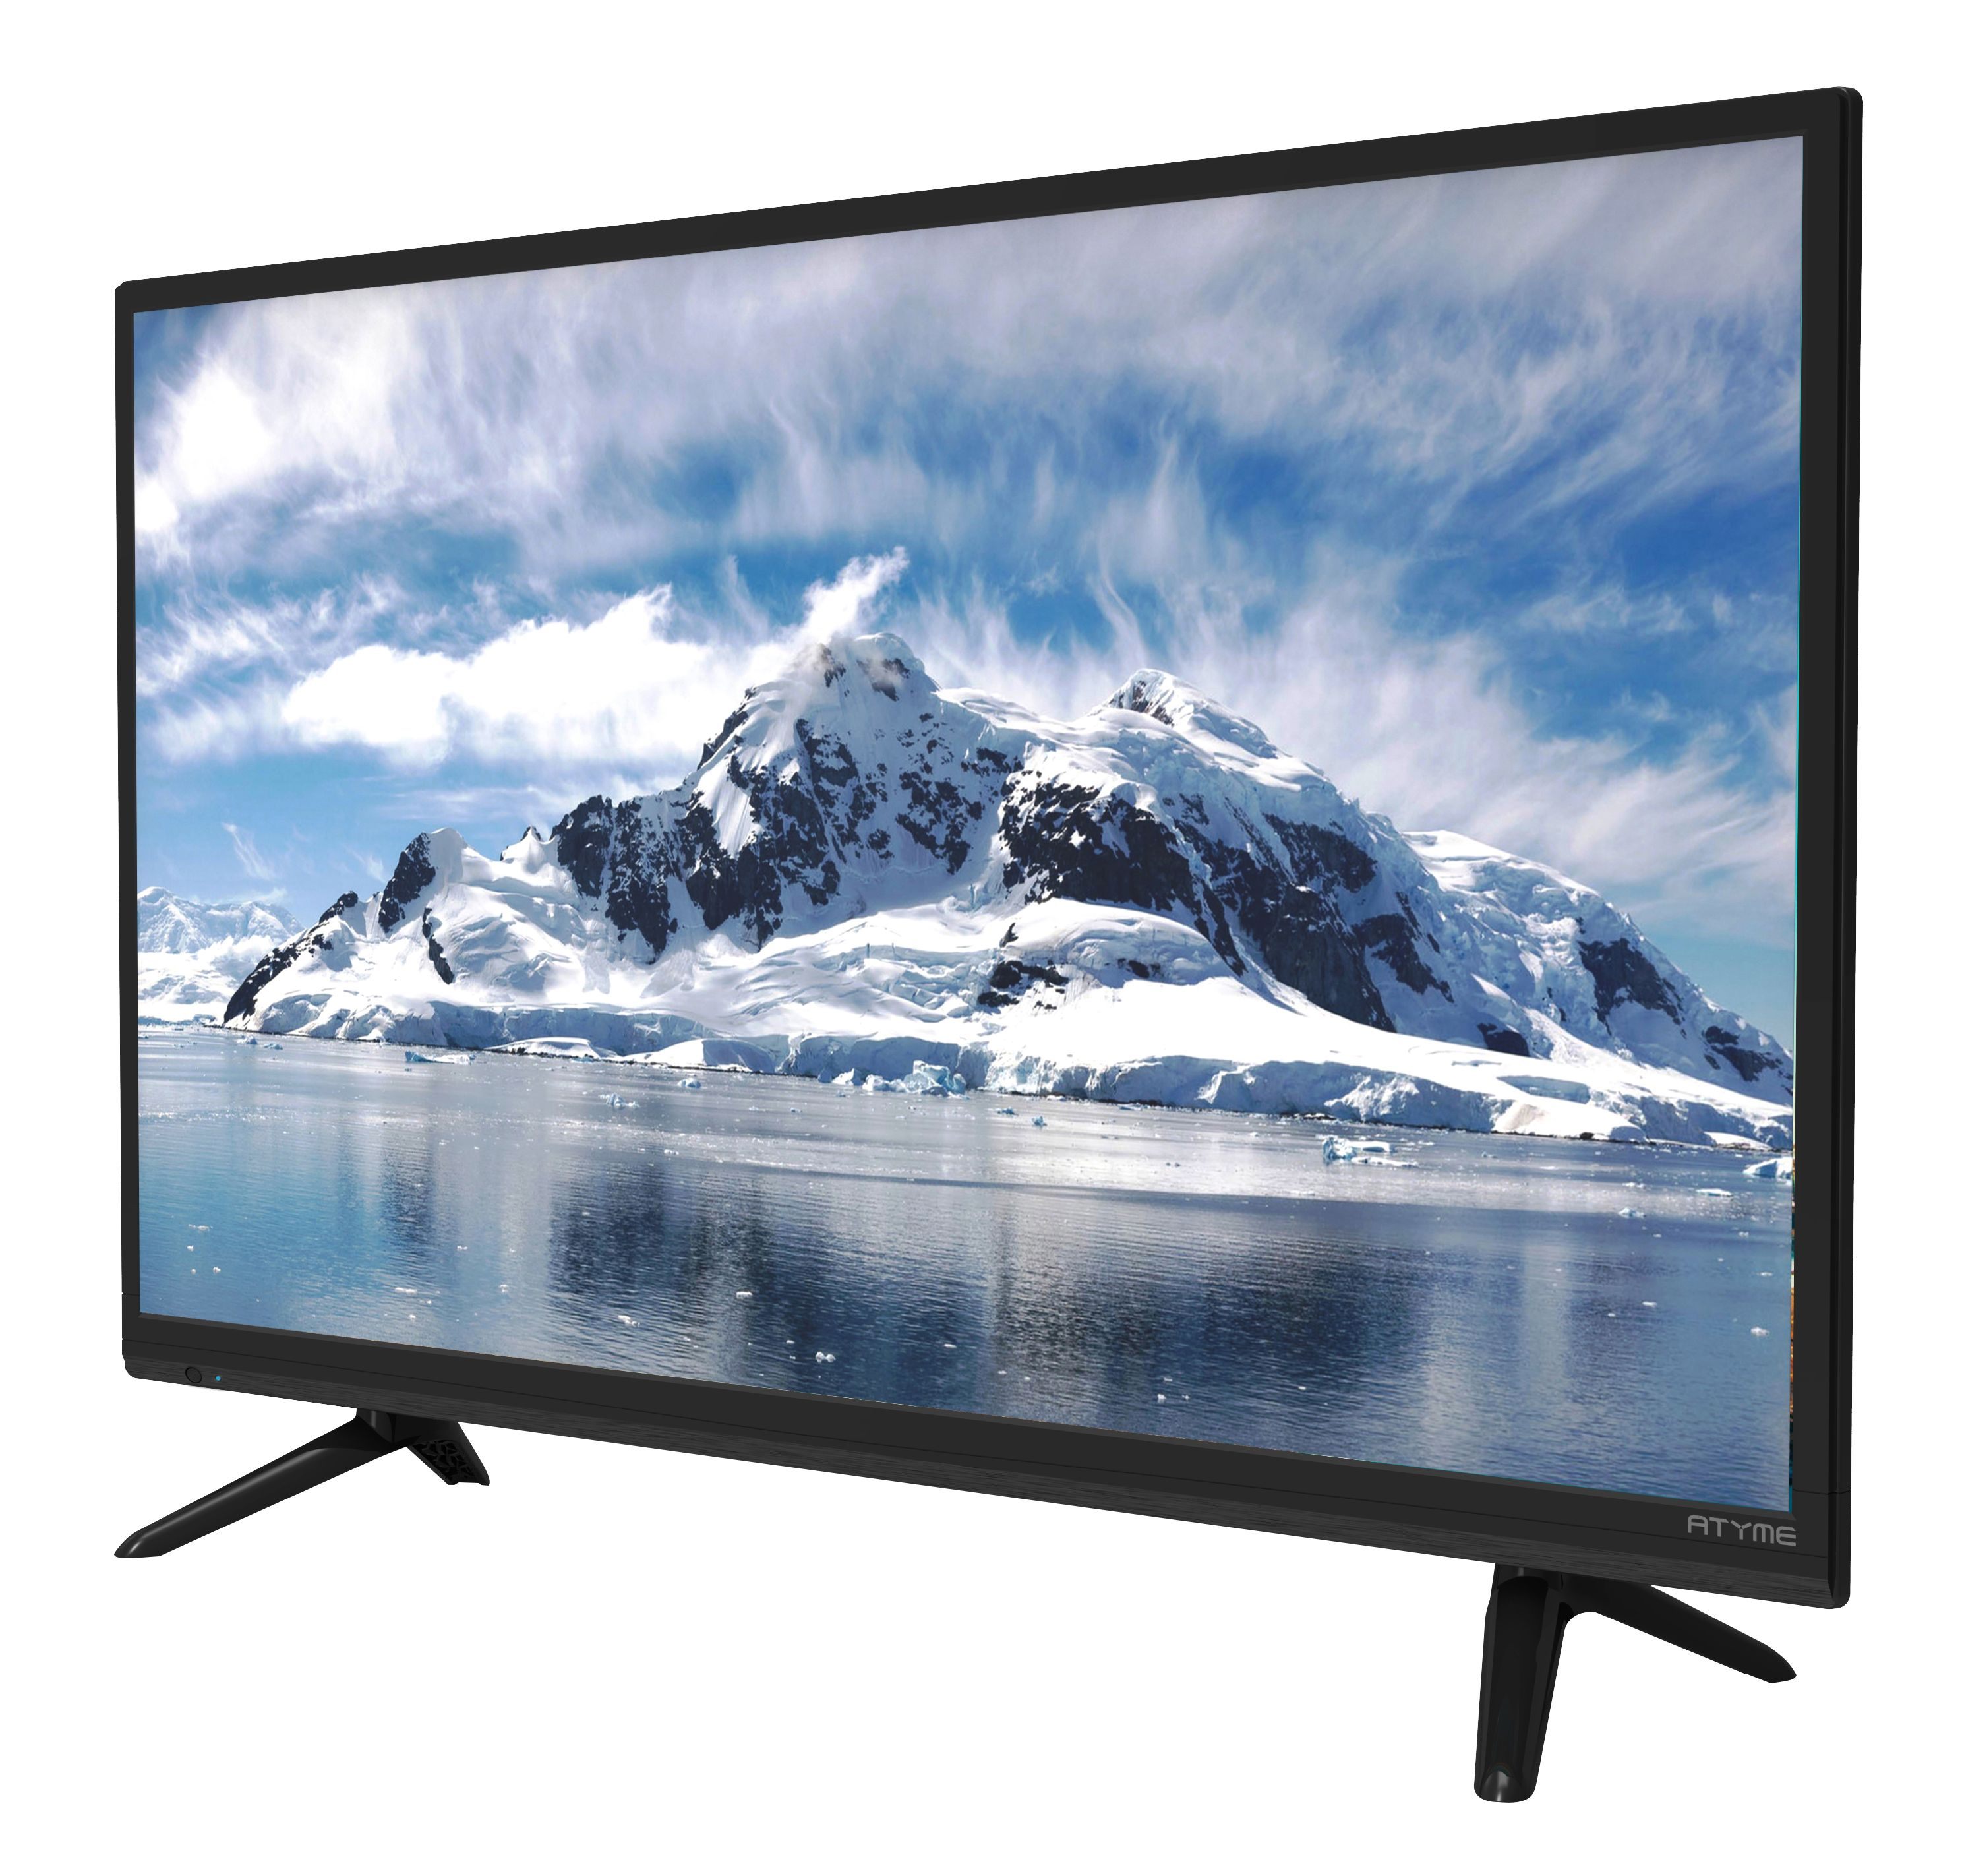 Atyme 32 Class Hd 720p Led Tv 320am5dvd With Built In Dvd Player Ad Hd Aff Led Atyme In 2020 Led Tv Dvd Player Tv